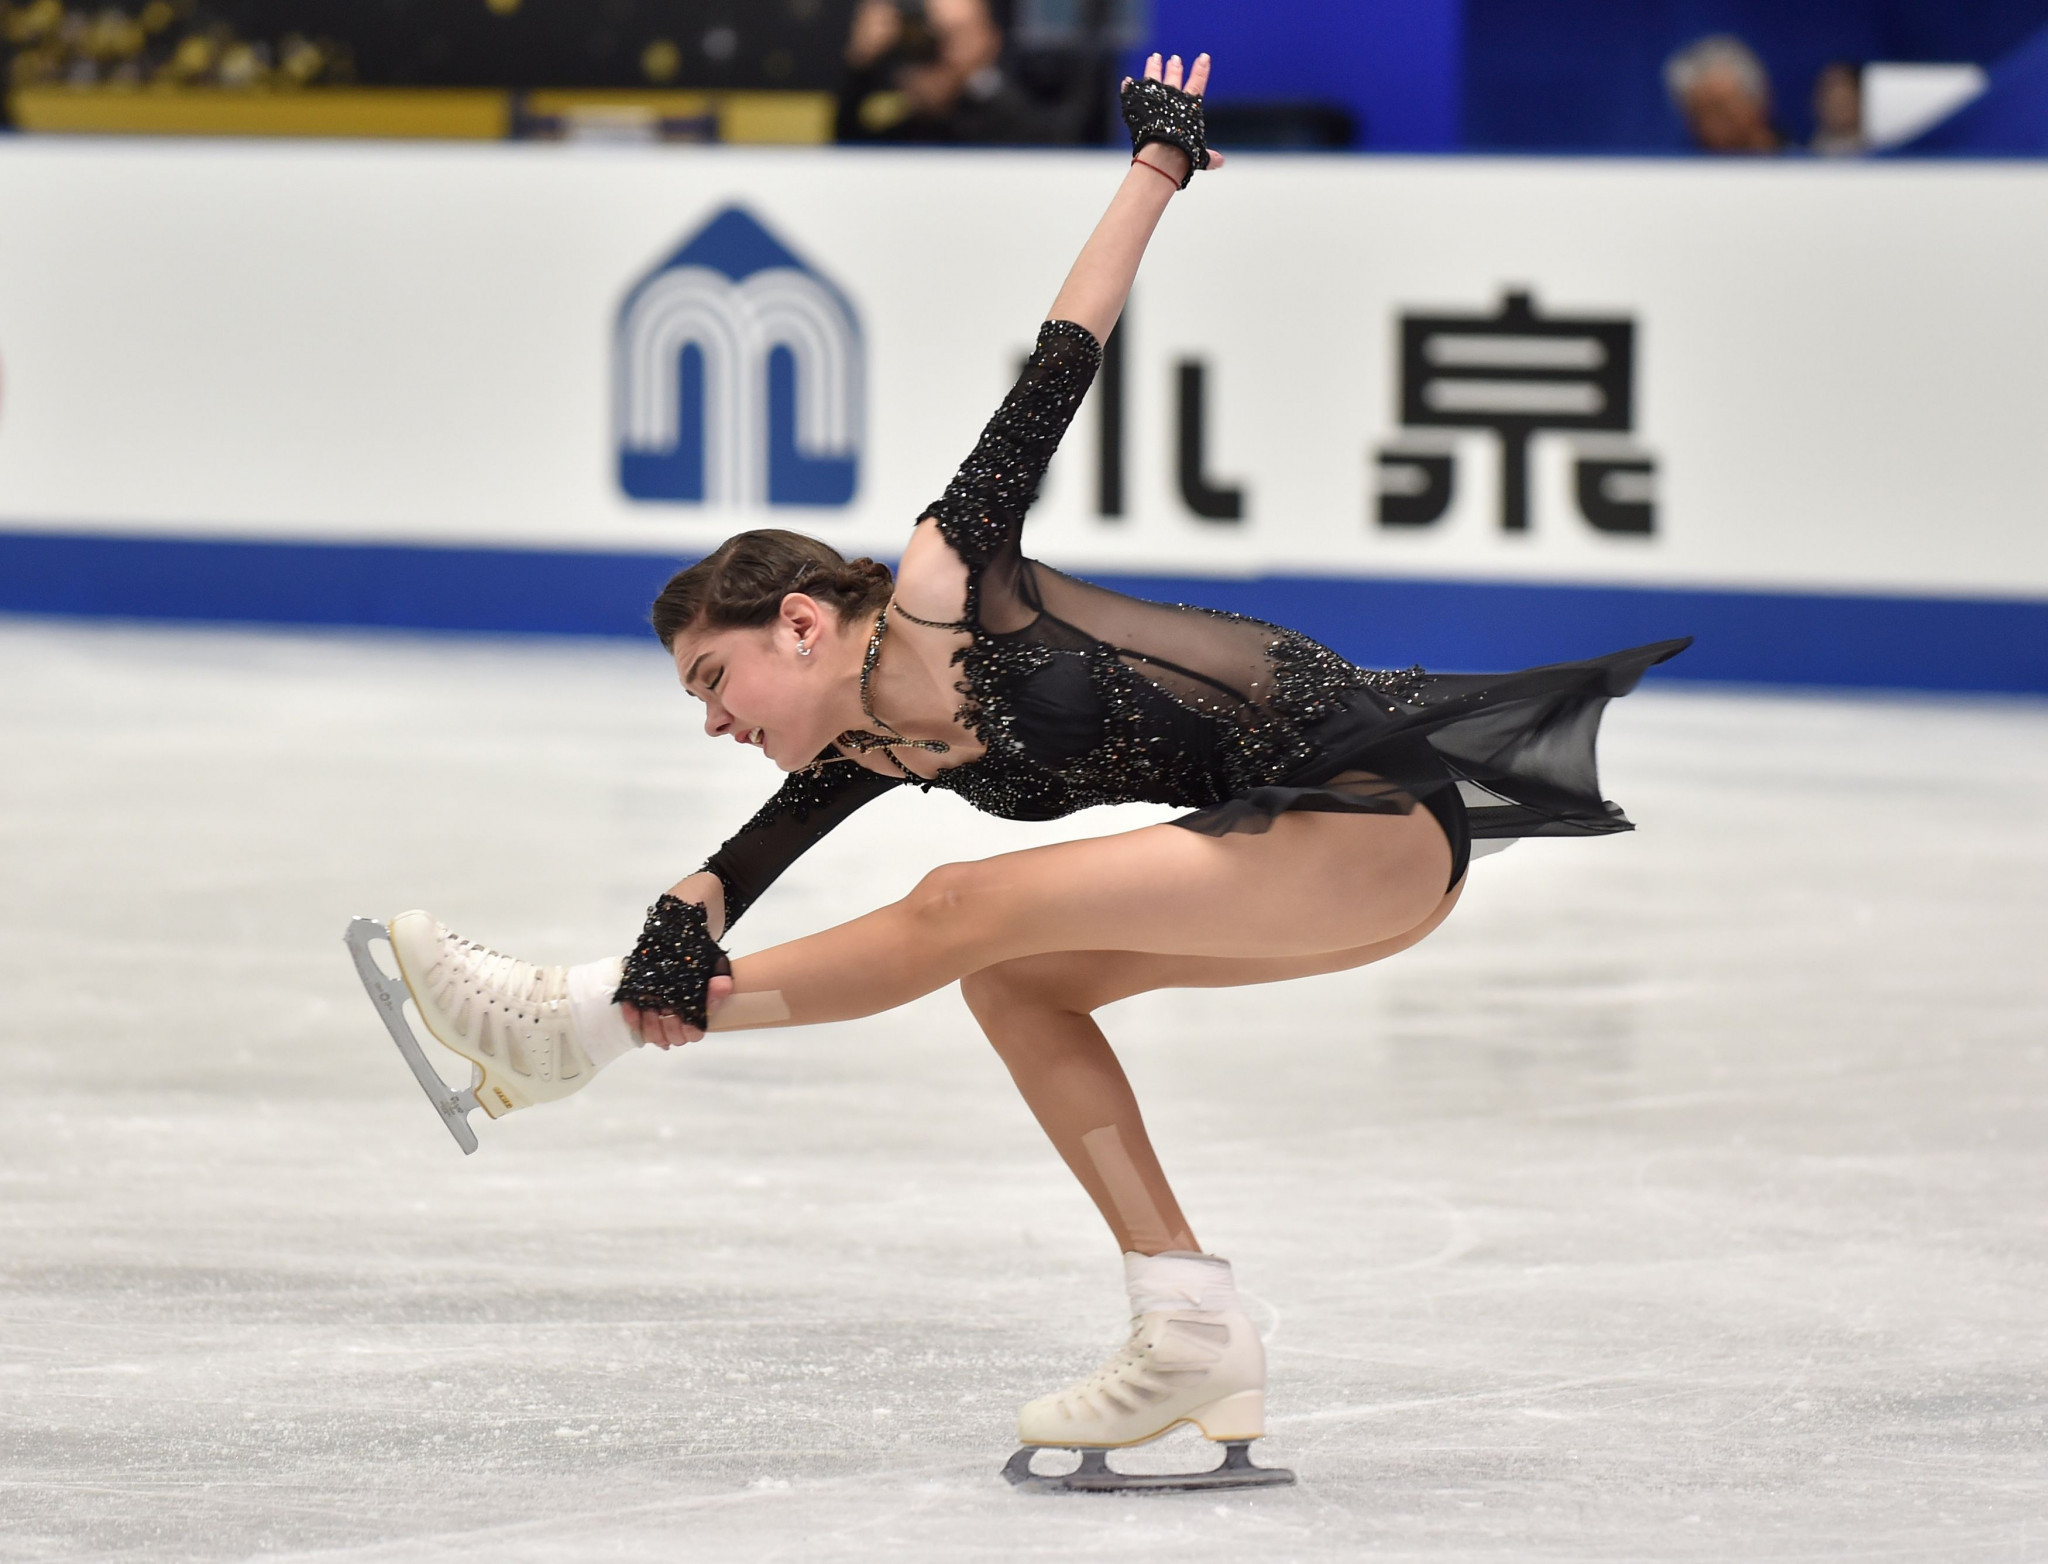 Evgenia Medvedeva could miss the ISU Grand Prix Figure Skating Final in December through injury © Getty Images